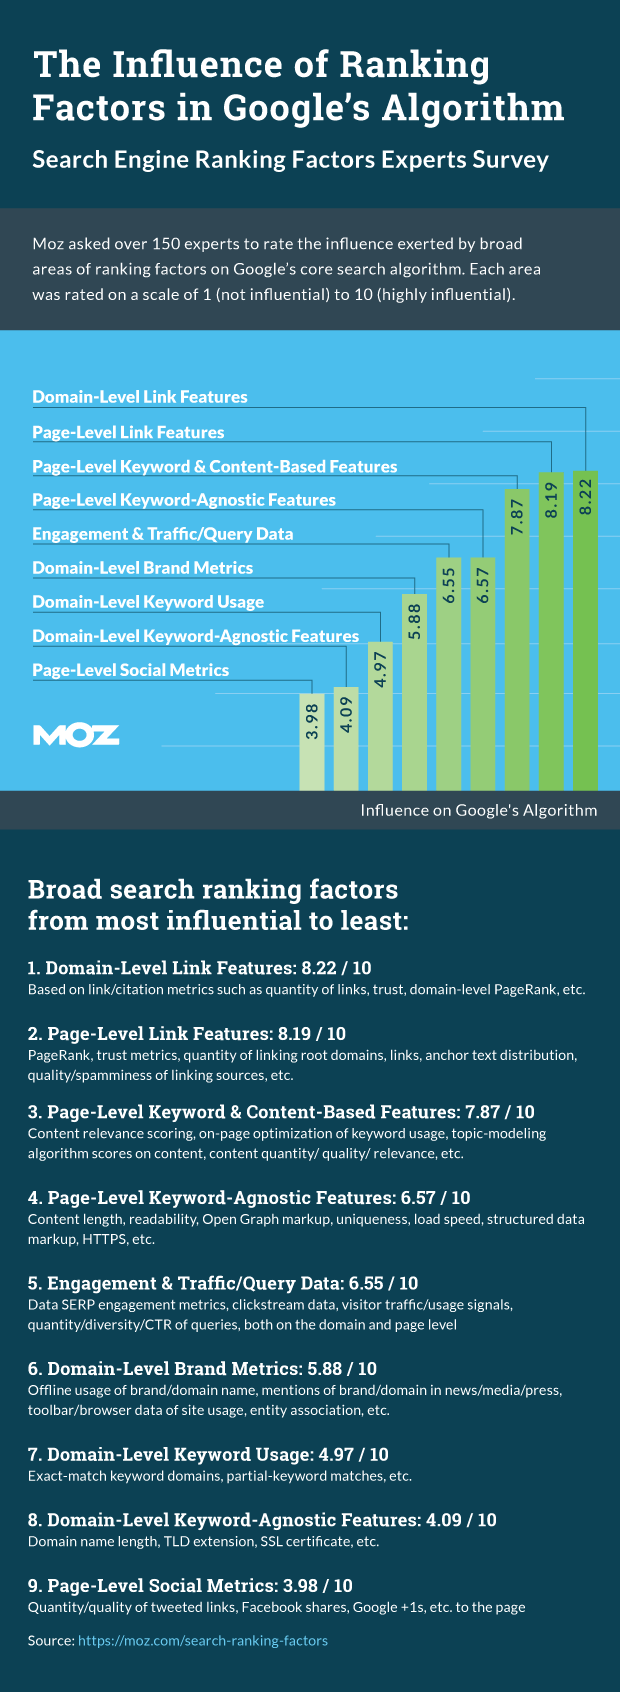 MOZ's Google Ranking Factors 2015